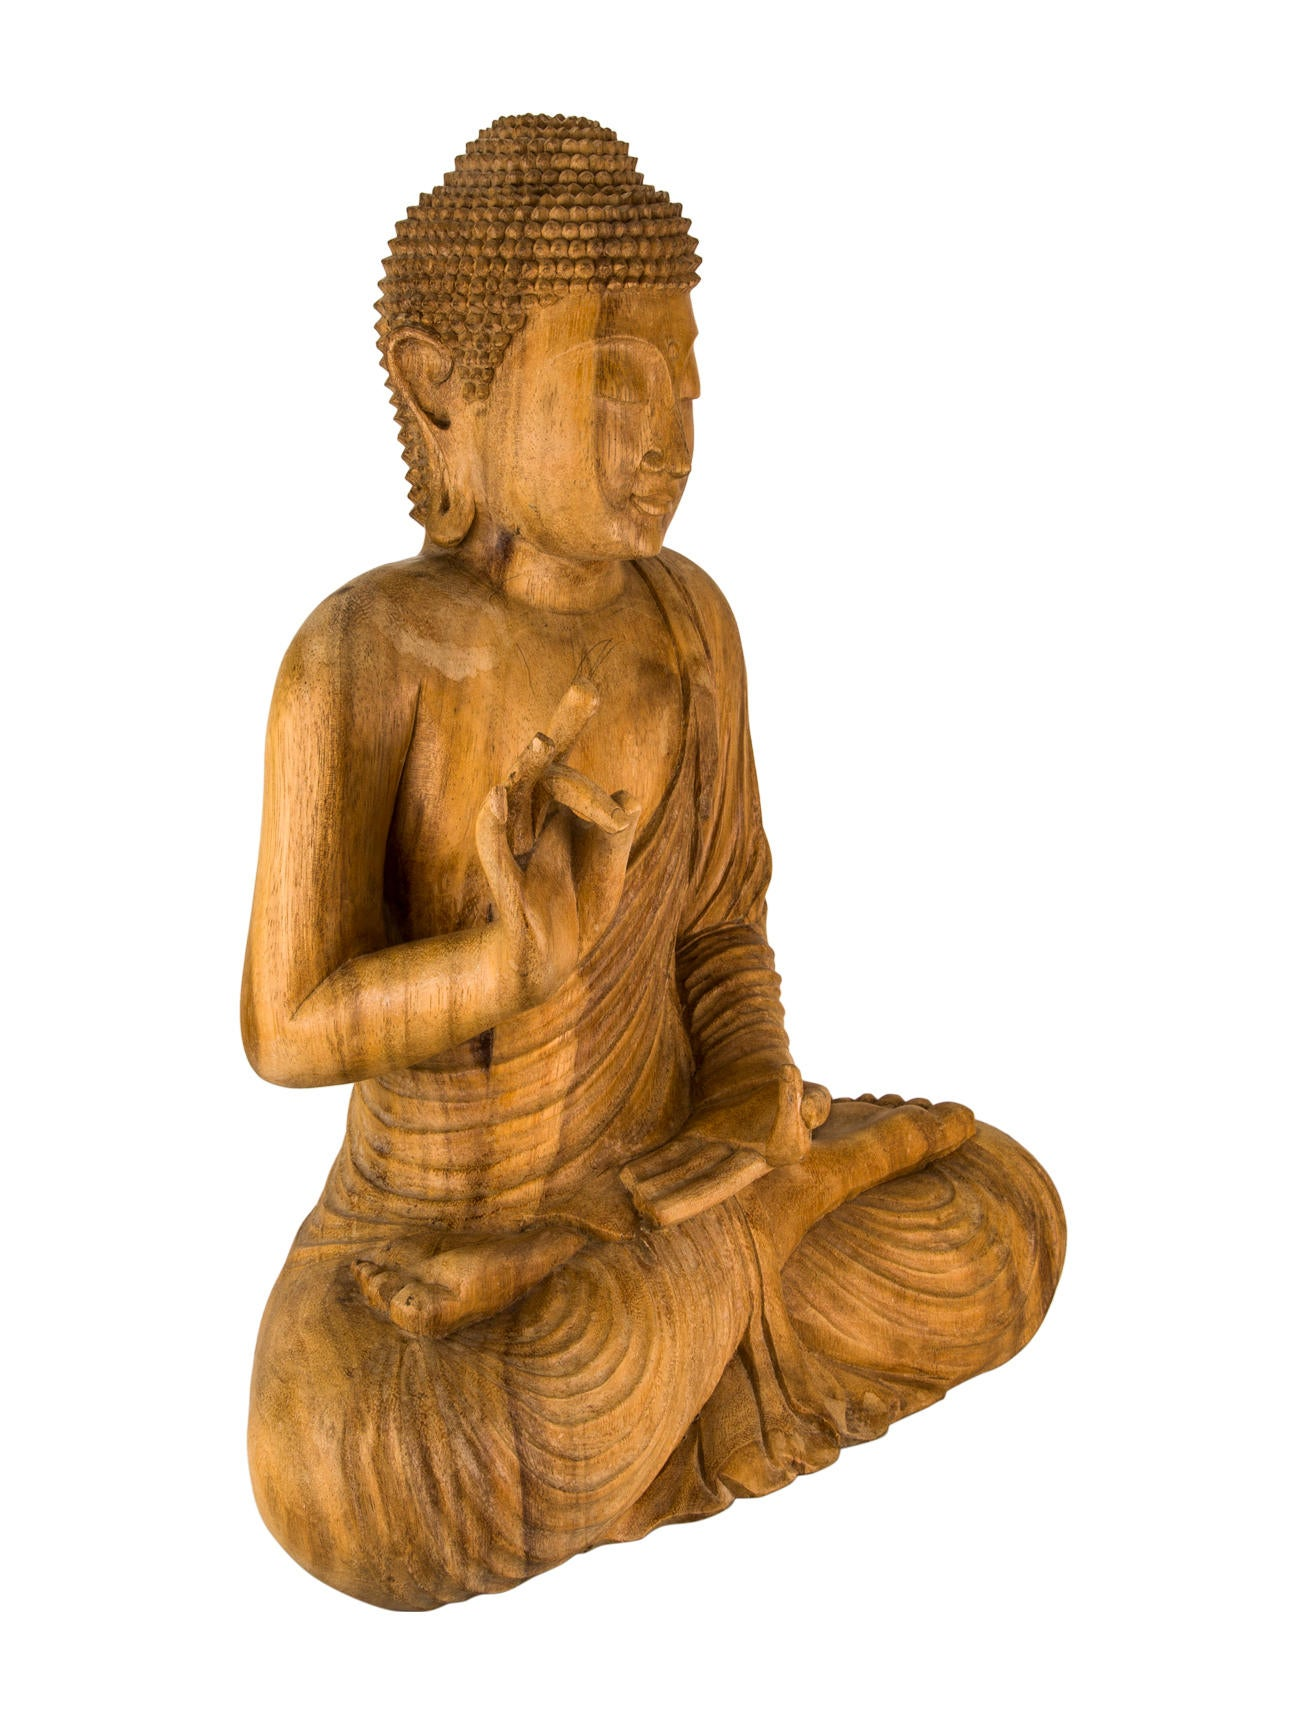 Carved Buddha Sculpture Decor And Accessories